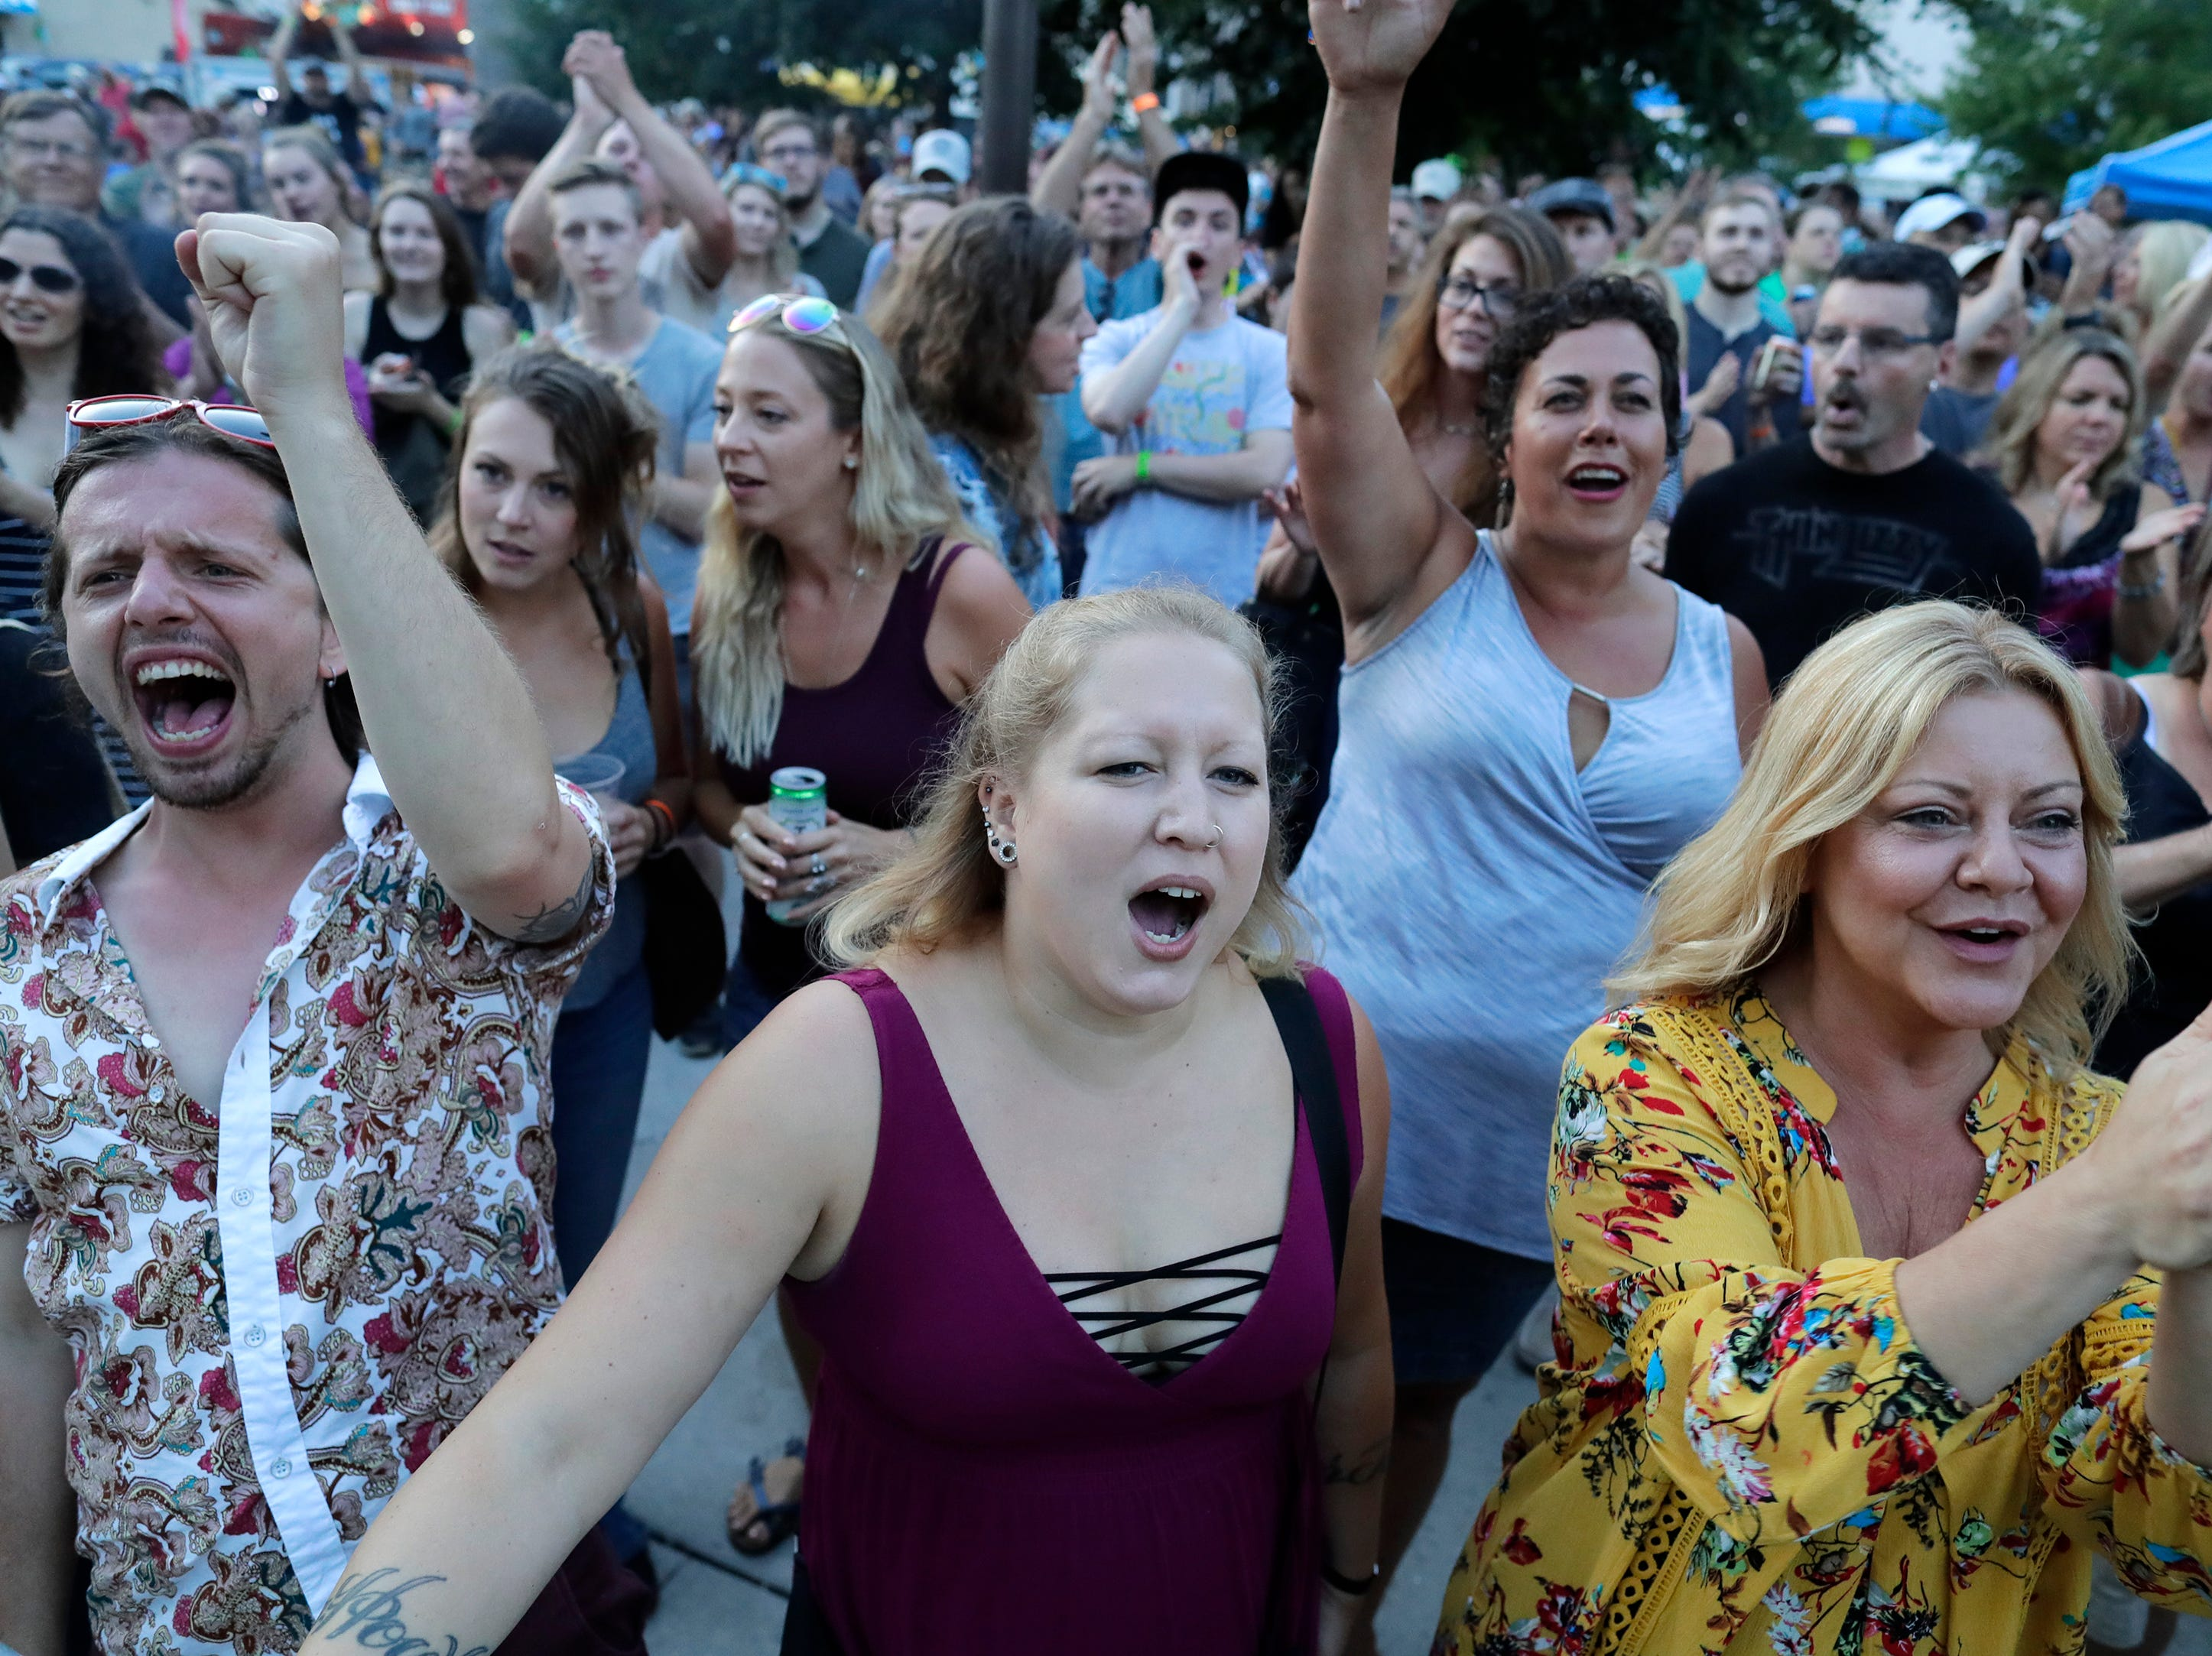 Fans cheer for The JC Brooks Band as they perform at Houdini Plaza during the Mile of Music Friday, August 3, 2018, in Appleton, Wis.  